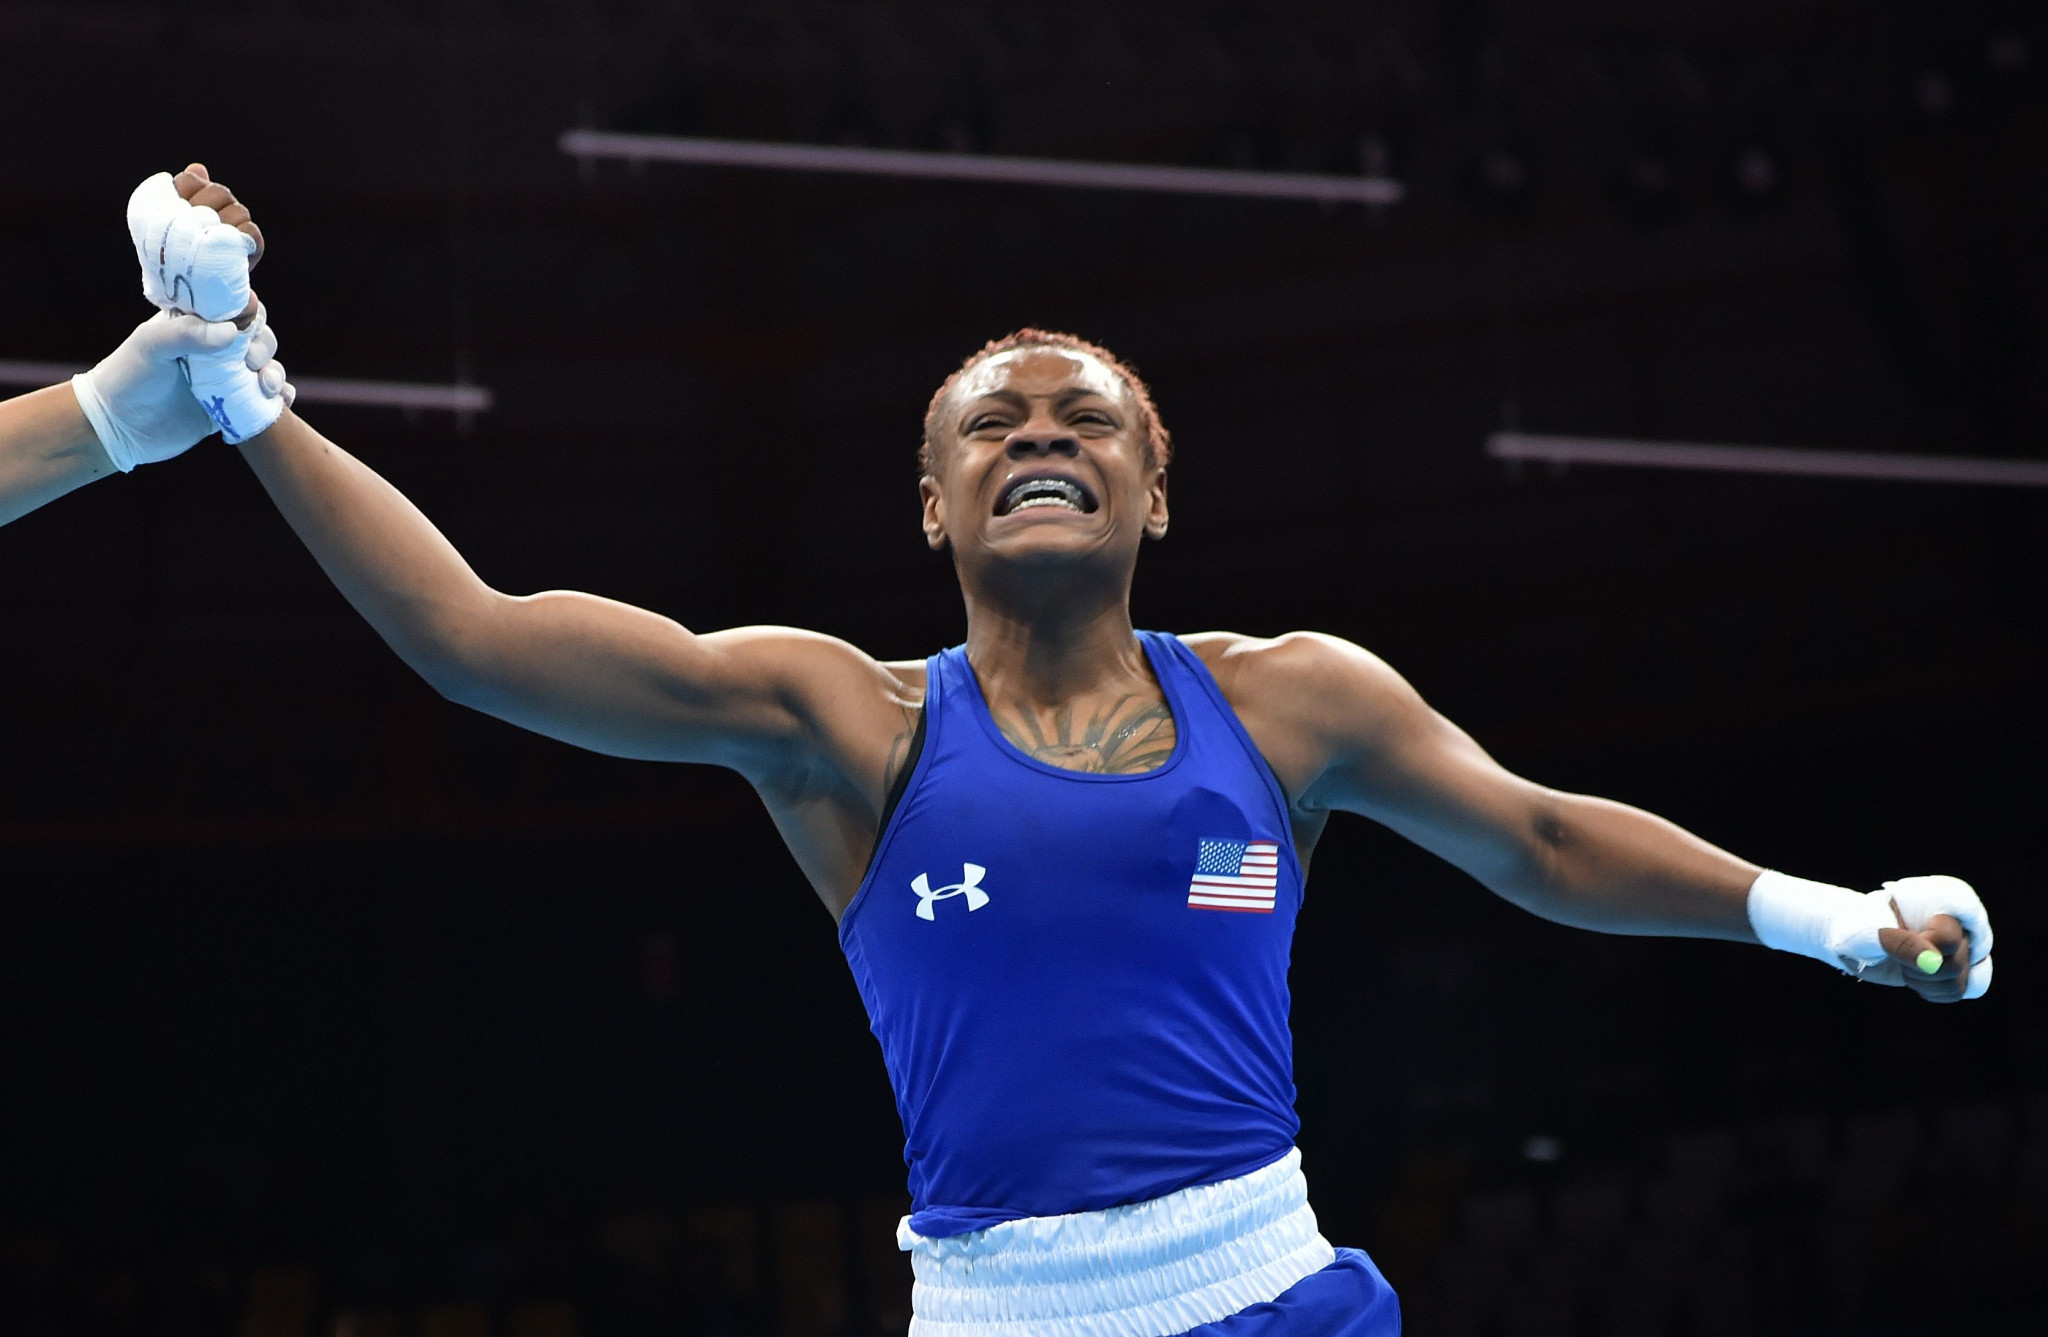 Victory for Pan American Games champion Jones at AIBA Women's World Championships